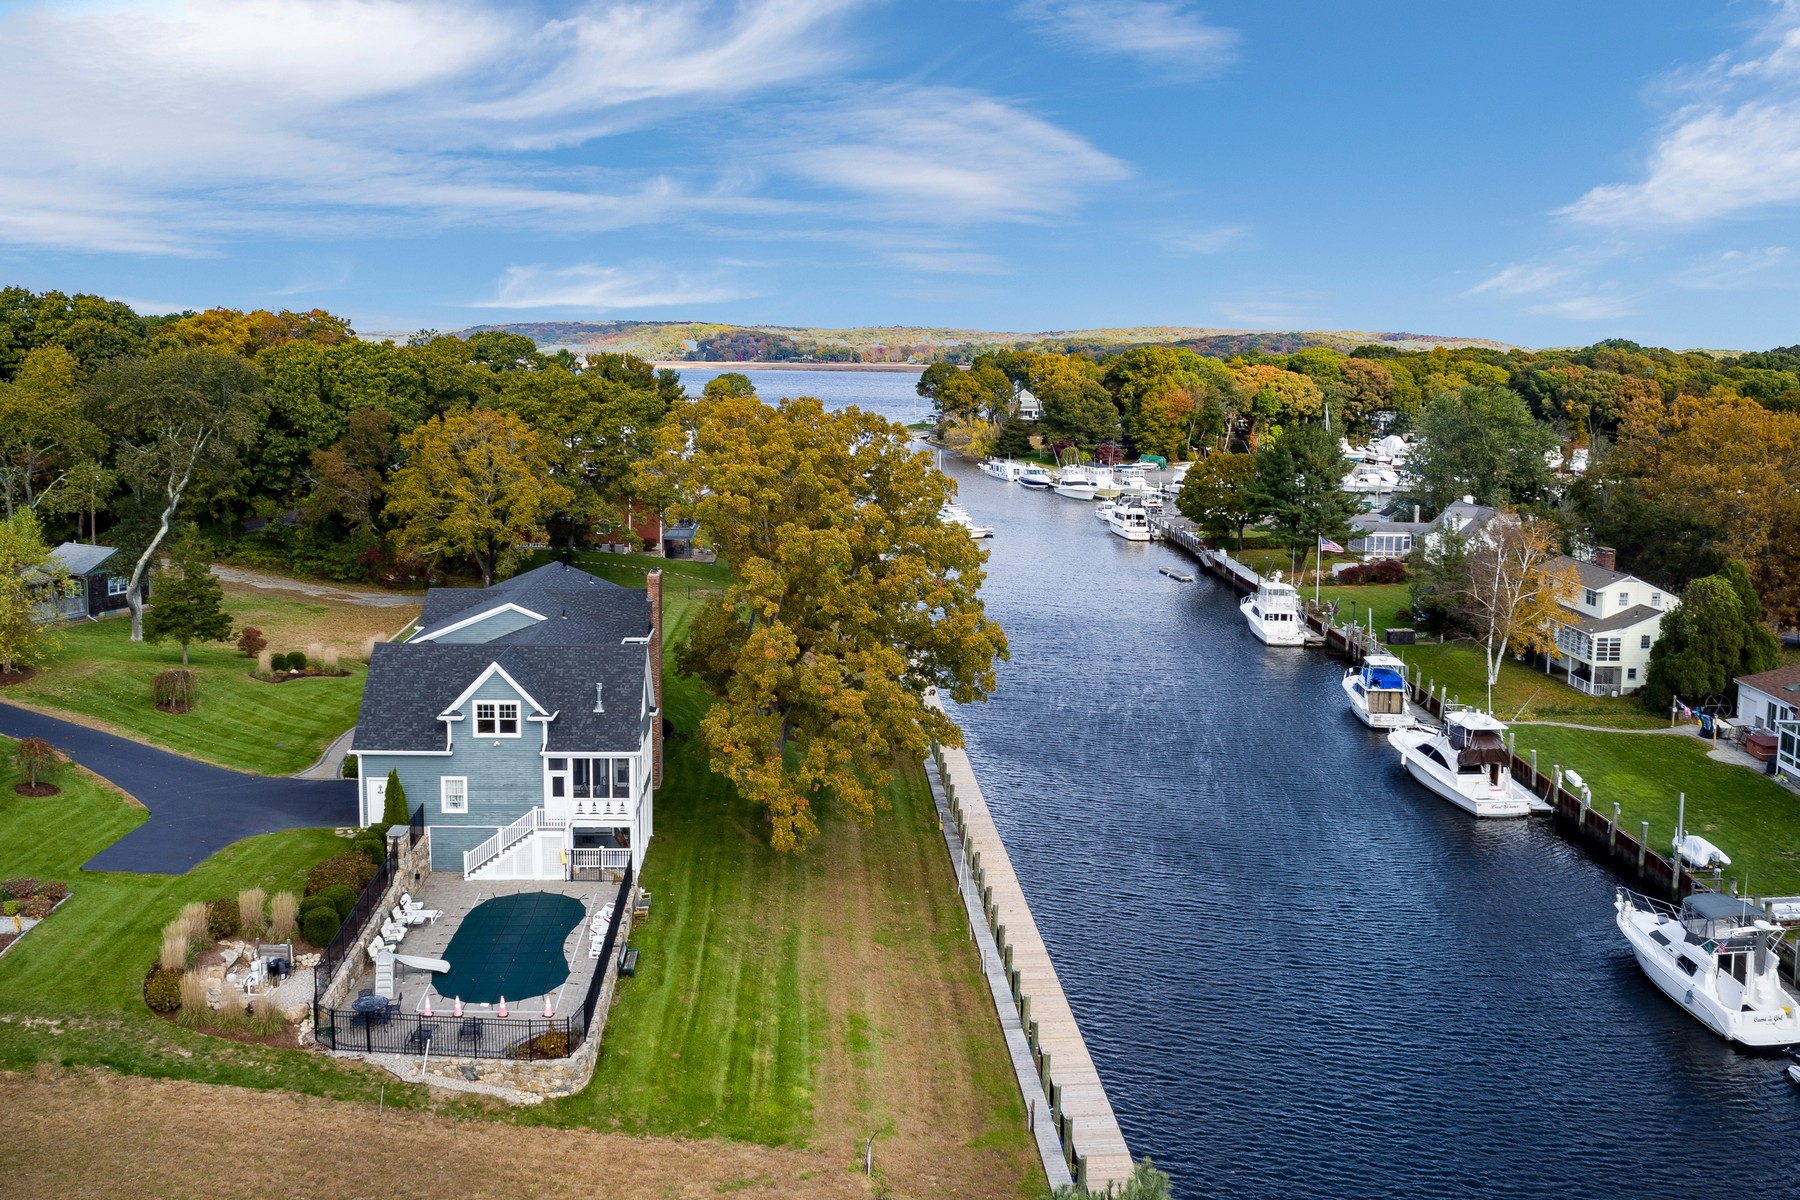 Single Family Homes for Sale at Waterfront Dream Come True! 16 Channelside Drive, Old Saybrook, Connecticut 06475 United States